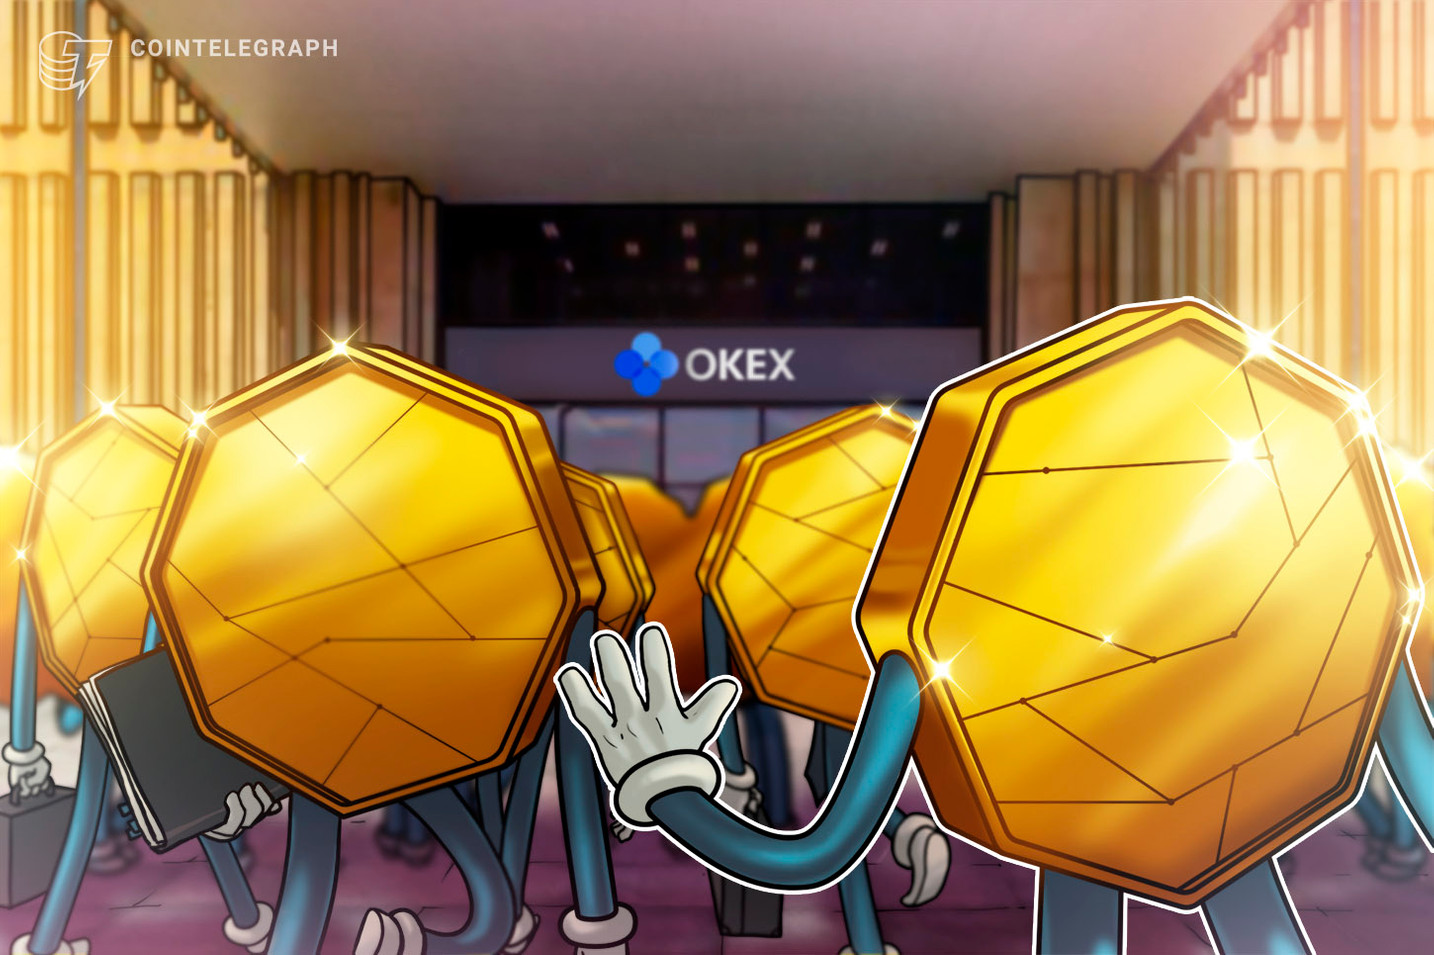 OKEx goes all in on Uniswap's new token amid soaring DeFi fees